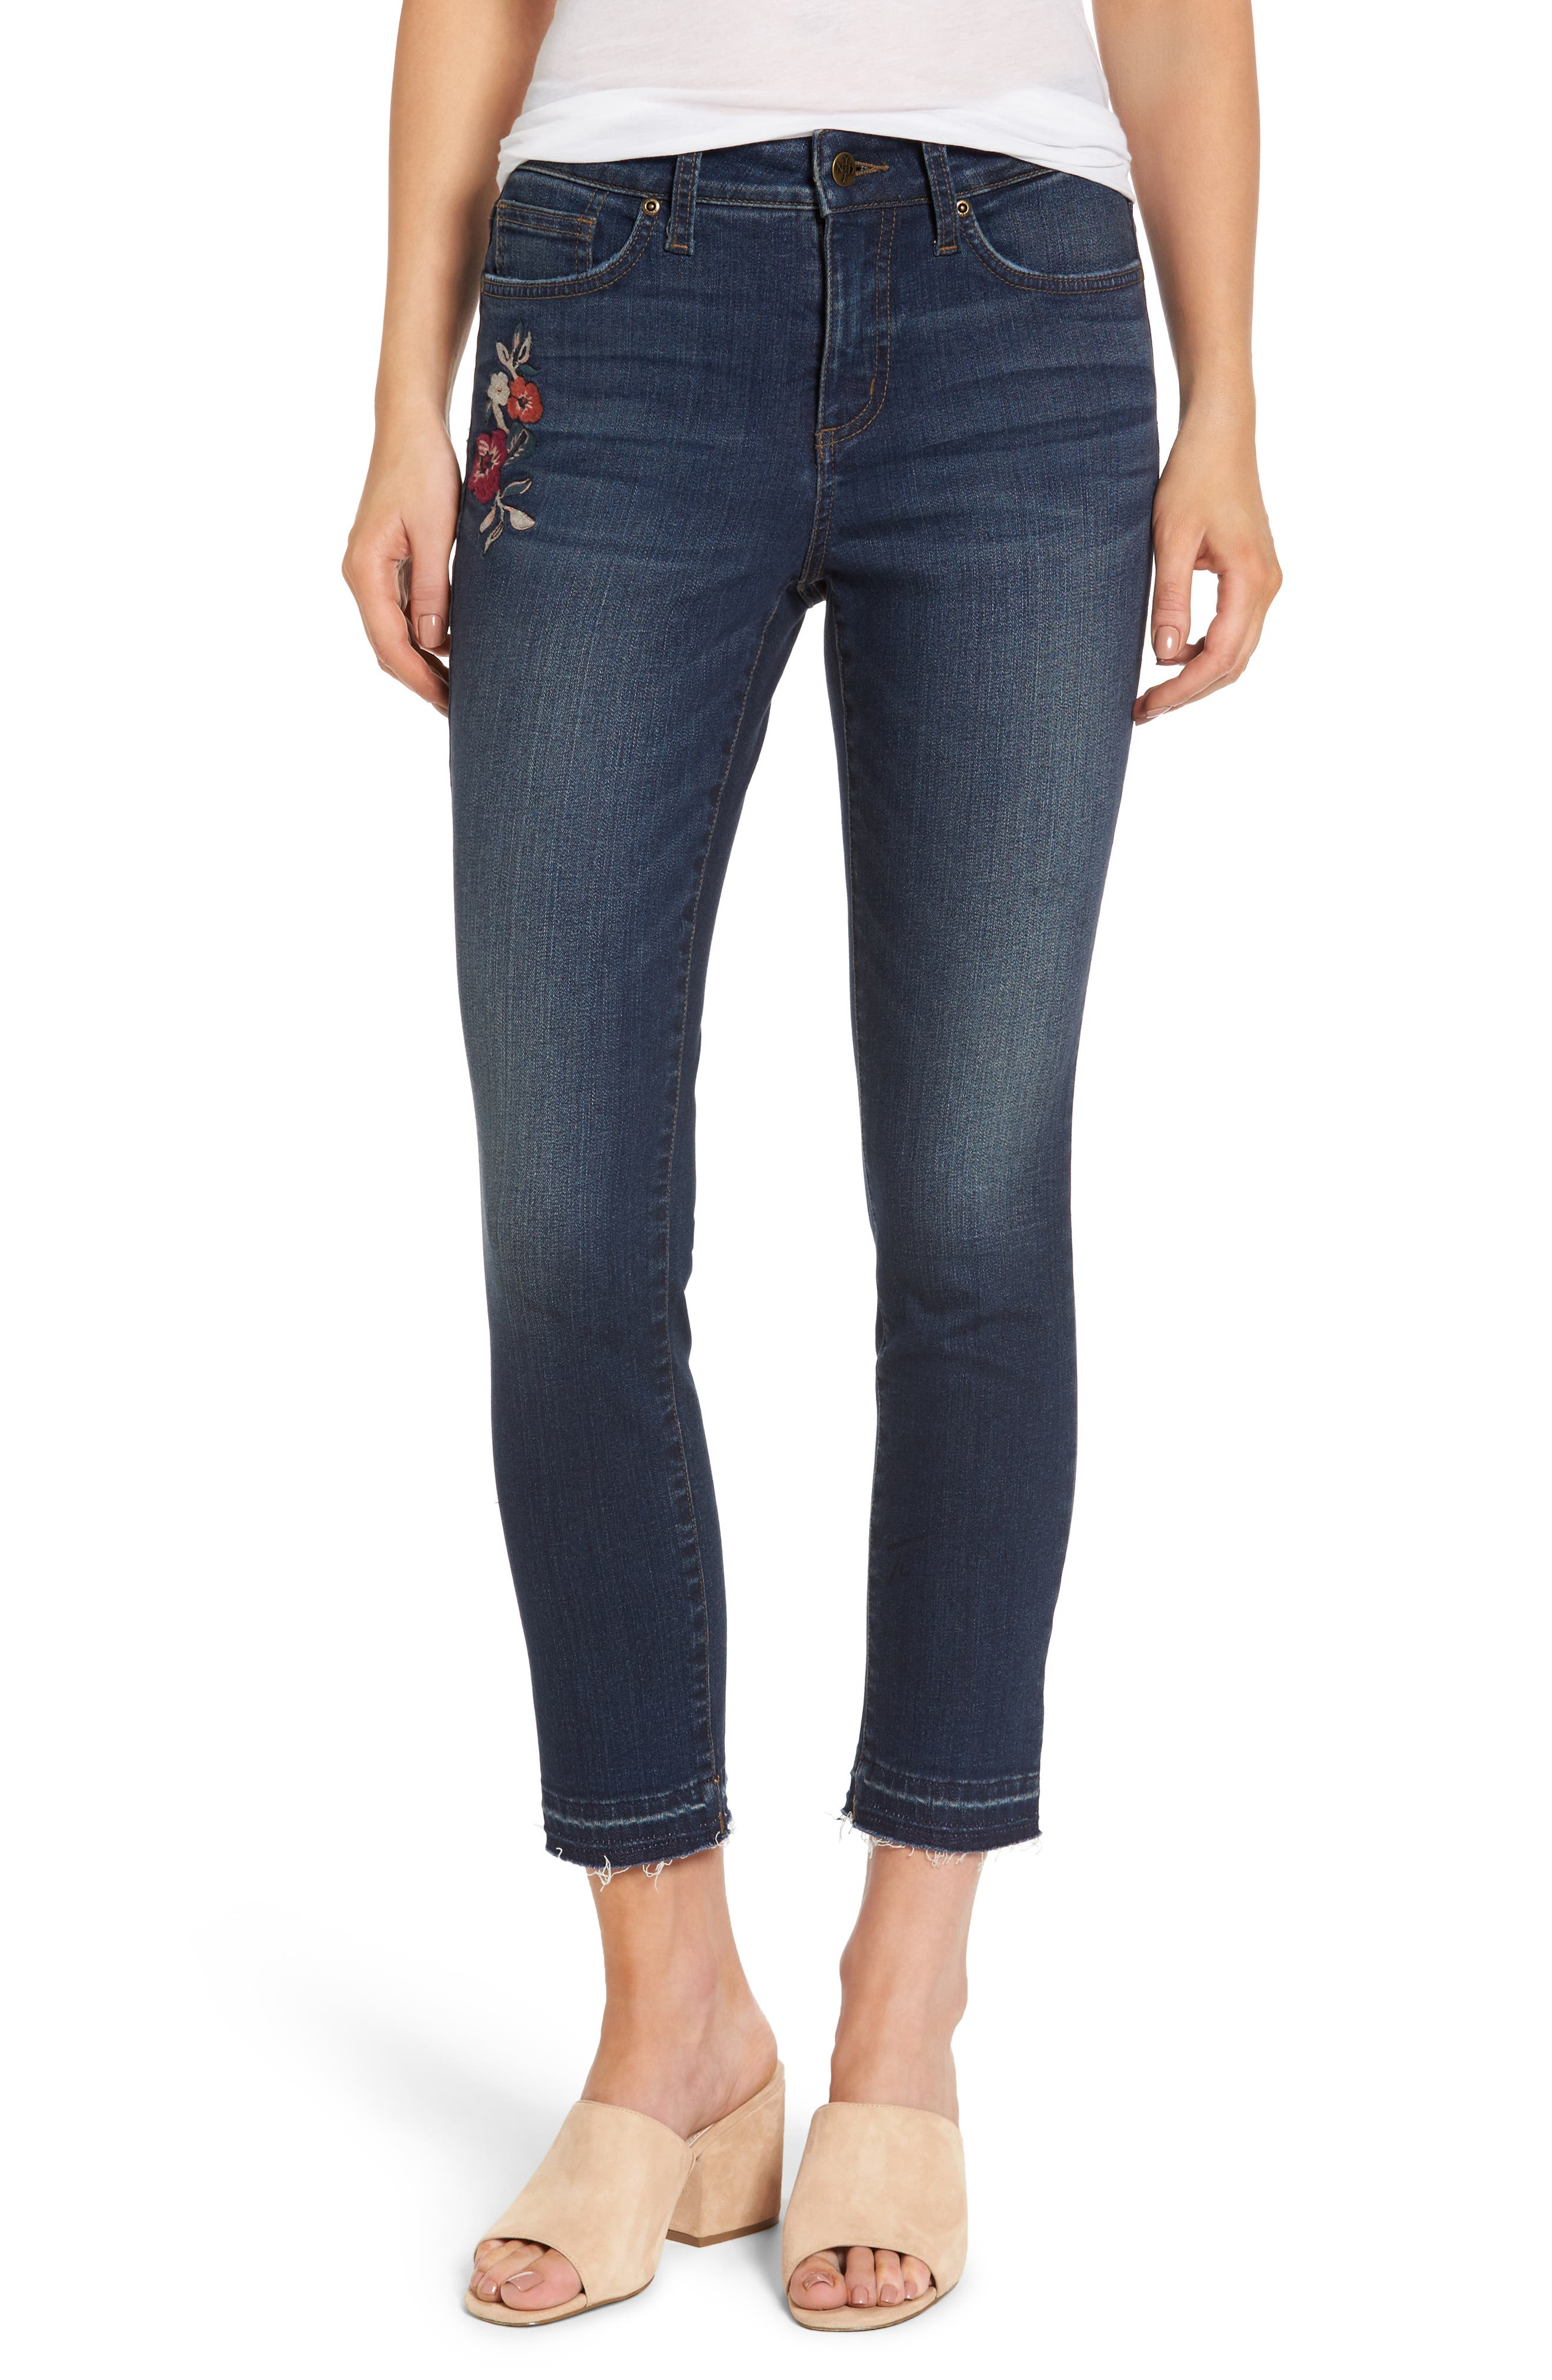 Main Image - NYDJ Alina Embroidered Stretch Skinny Ankle Jeans (Horizon)